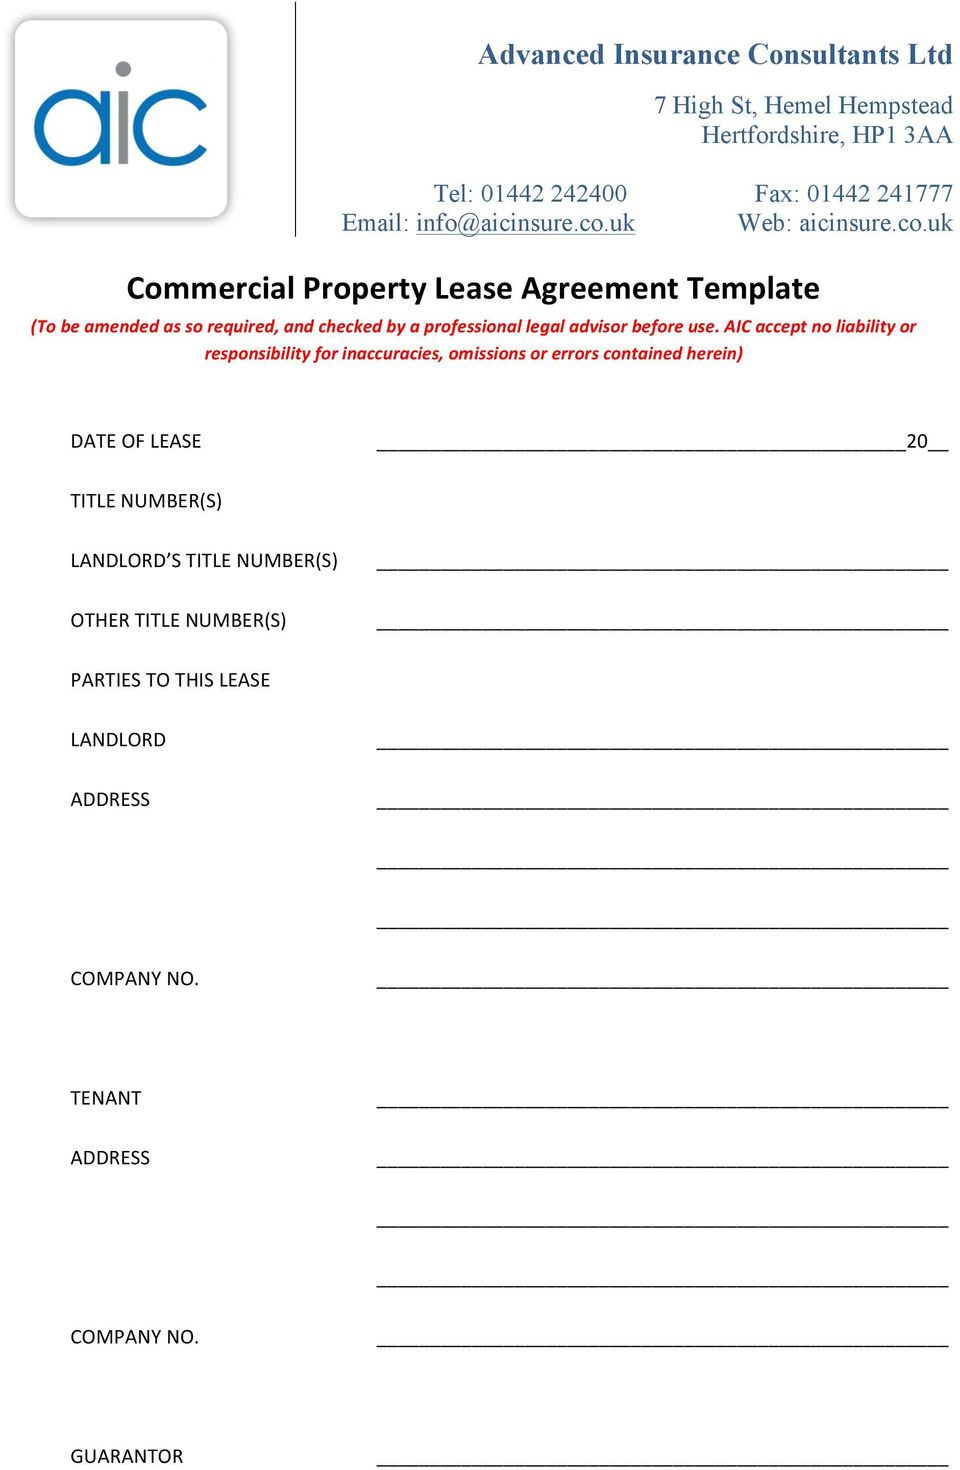 Commercial Property Lease Agreement Template Pdf